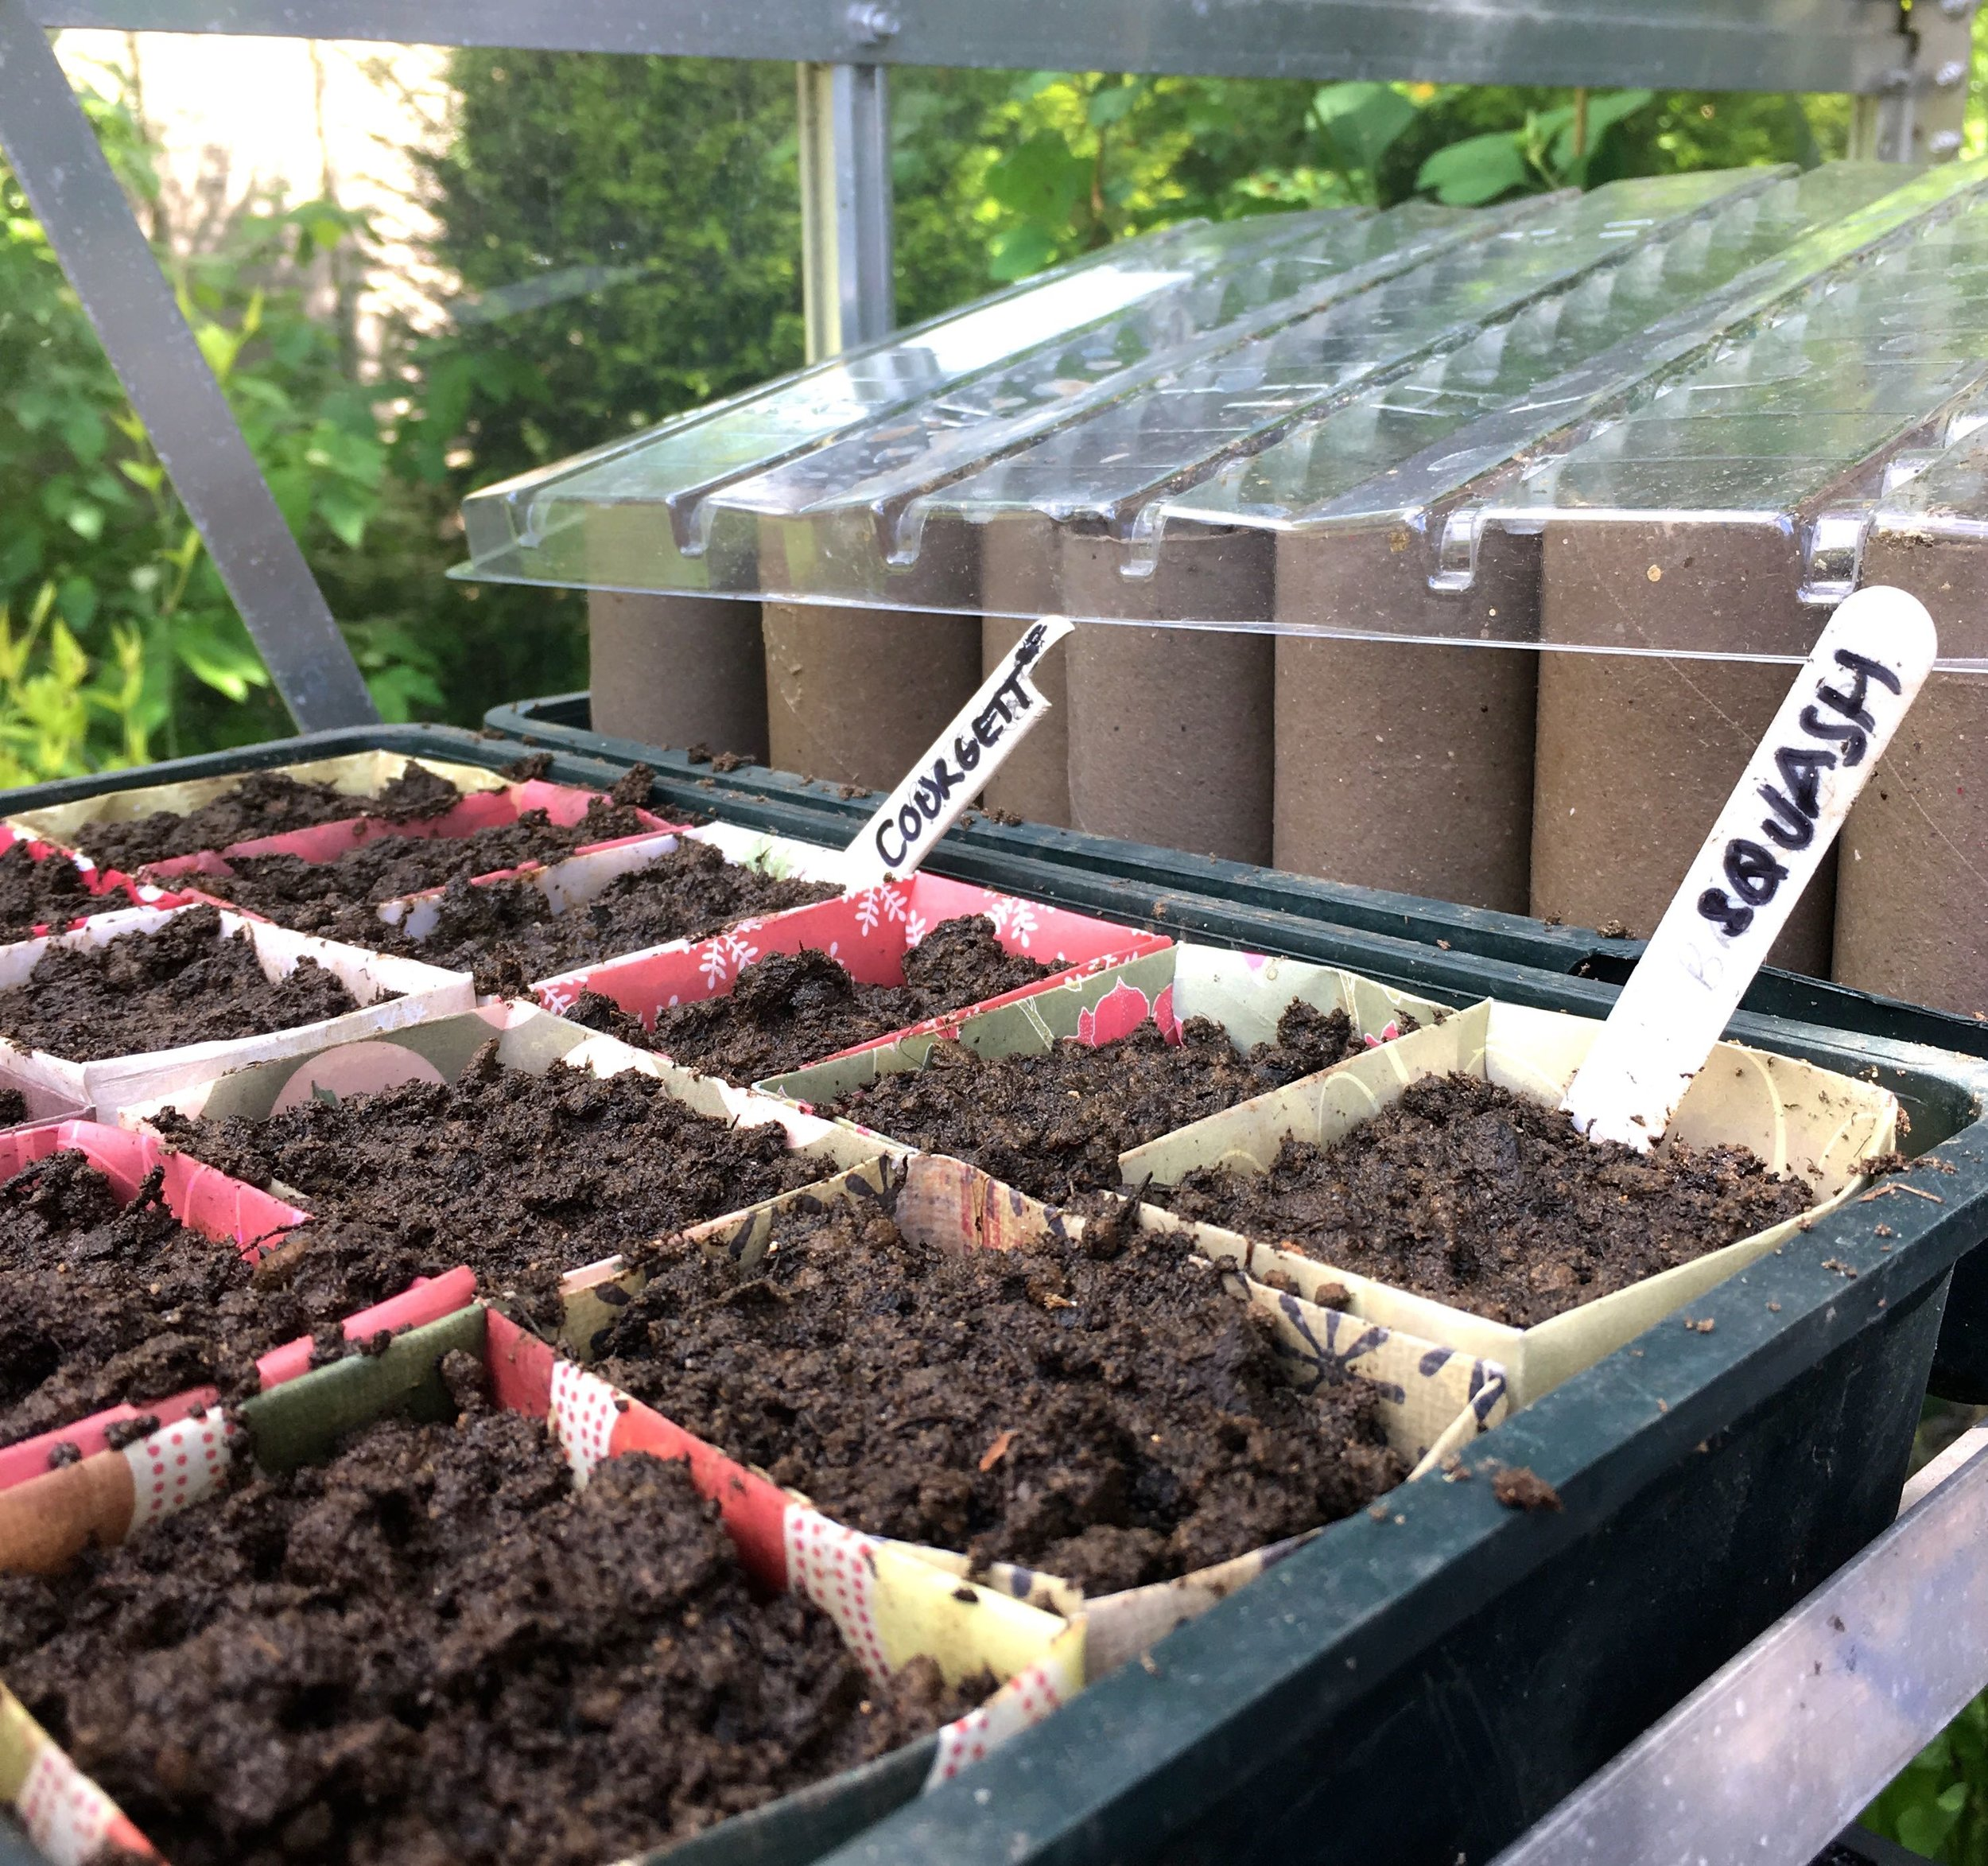 courgettes, squash and beans sown in the greenhouse